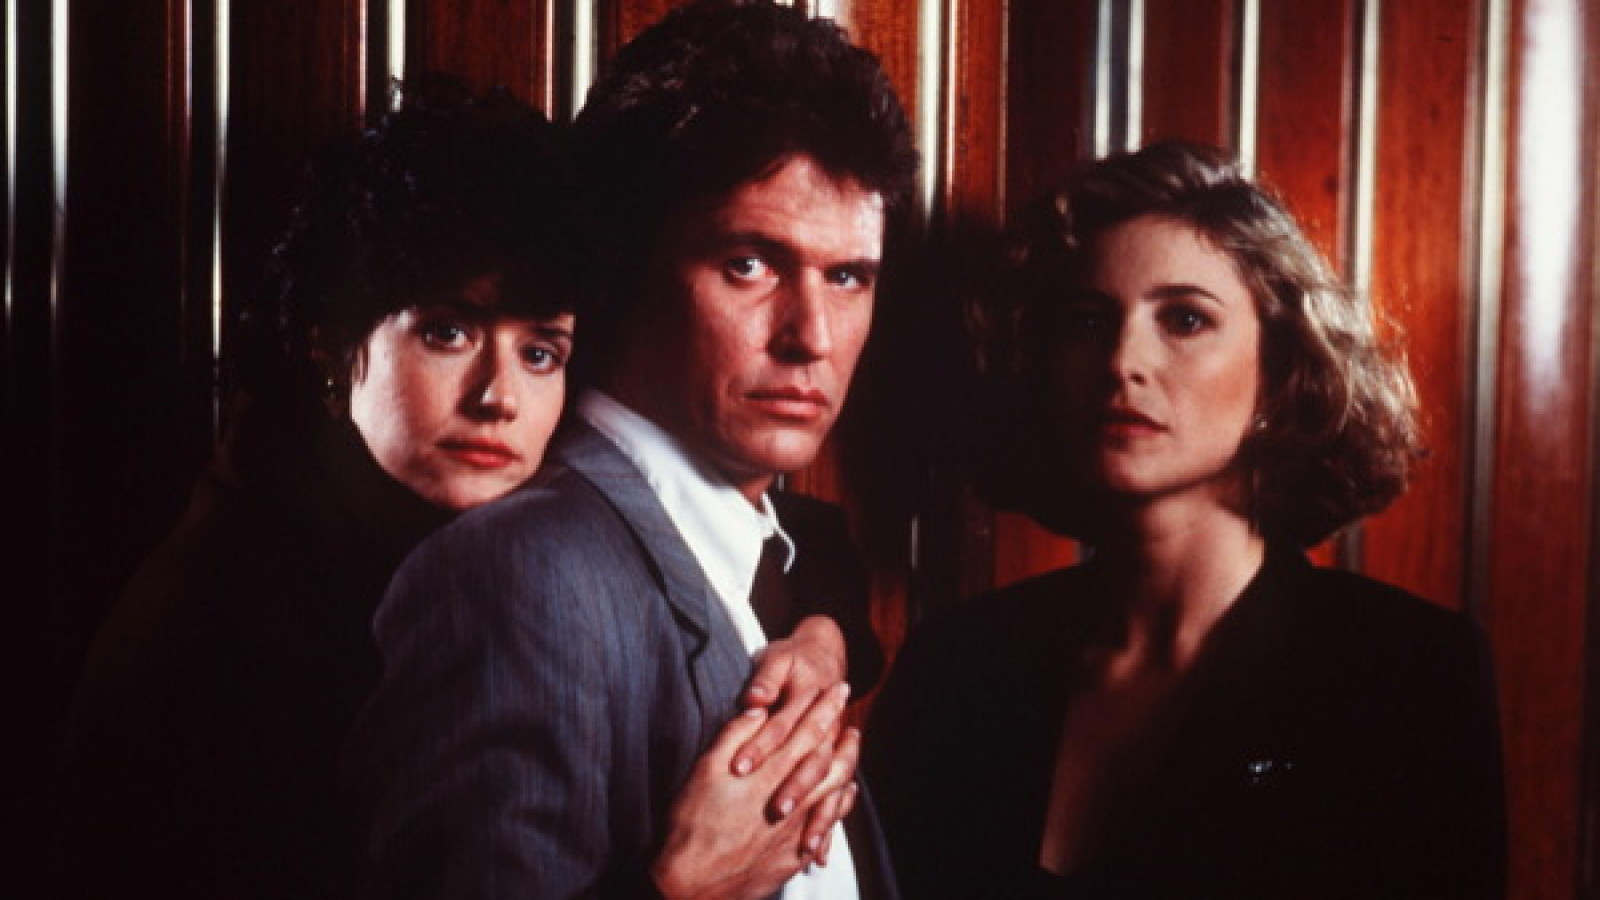 Ridley Scott's SOMEONE TO WATCH OVER ME Releasing on Blu-Ray